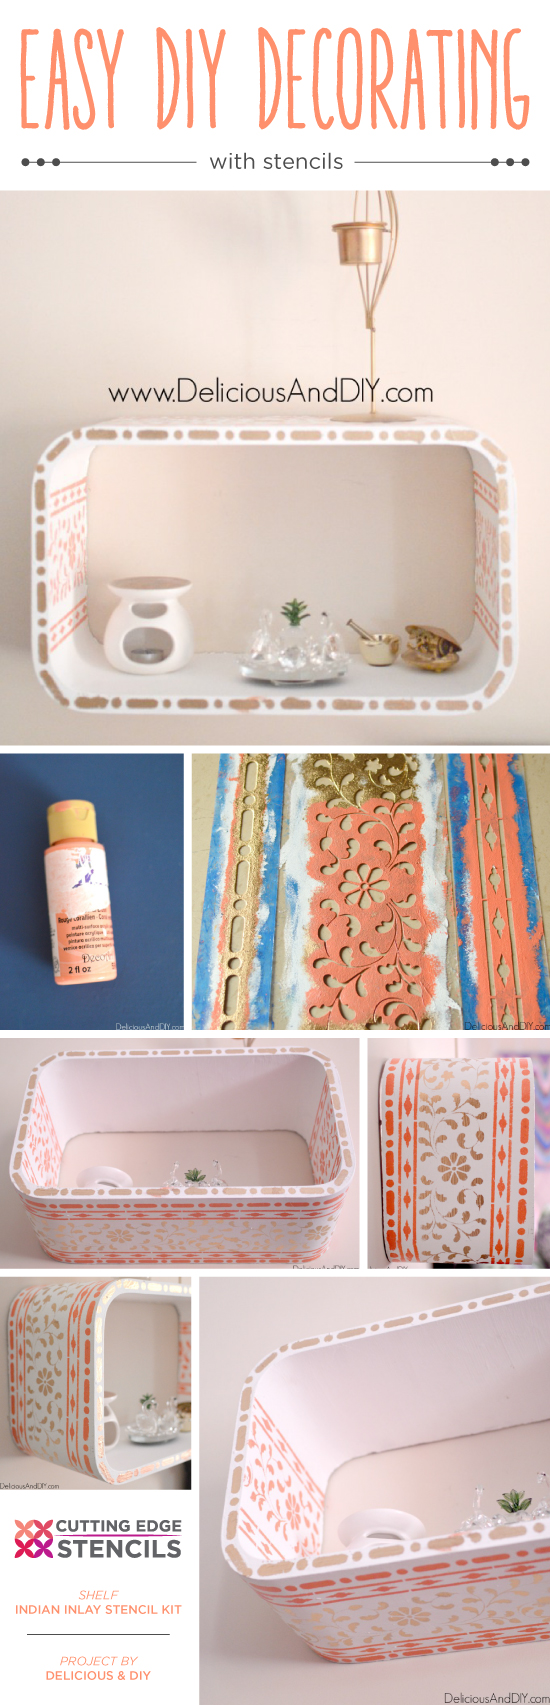 A DIY stenciled floating shelf using the Indian Inlay Stencil kit from Cutting Edge Stencils. http://www.cuttingedgestencils.com/indian-inlay-stencil-furniture.html